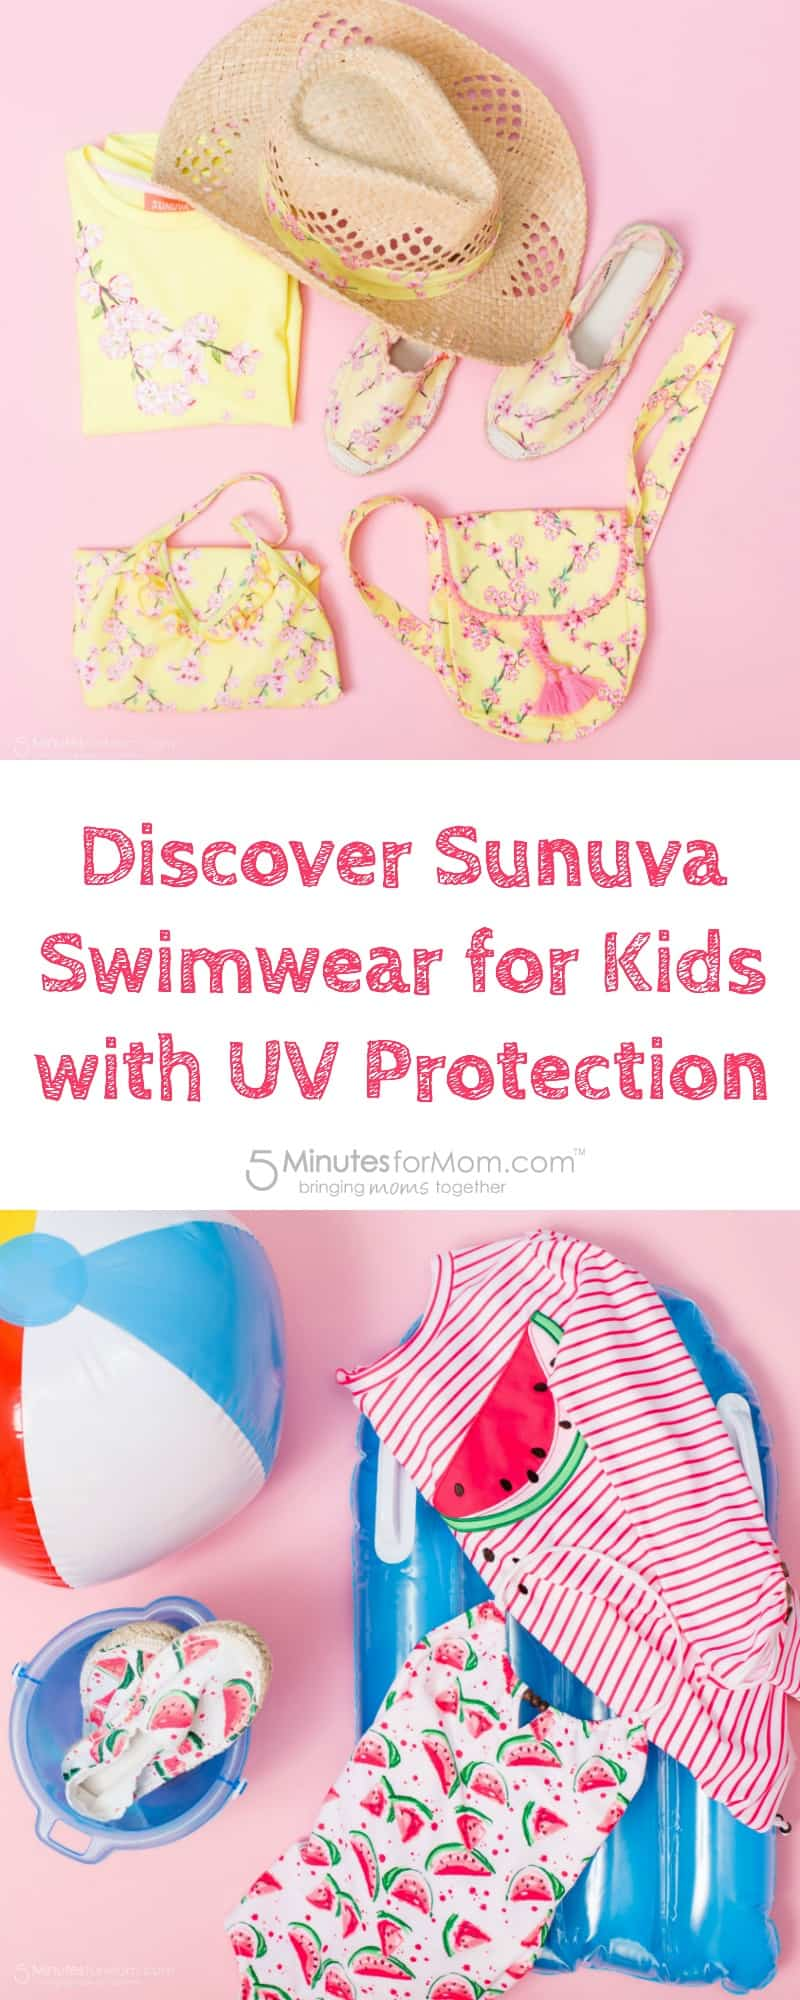 Sunuva Swimwear for Kids with UV Protection